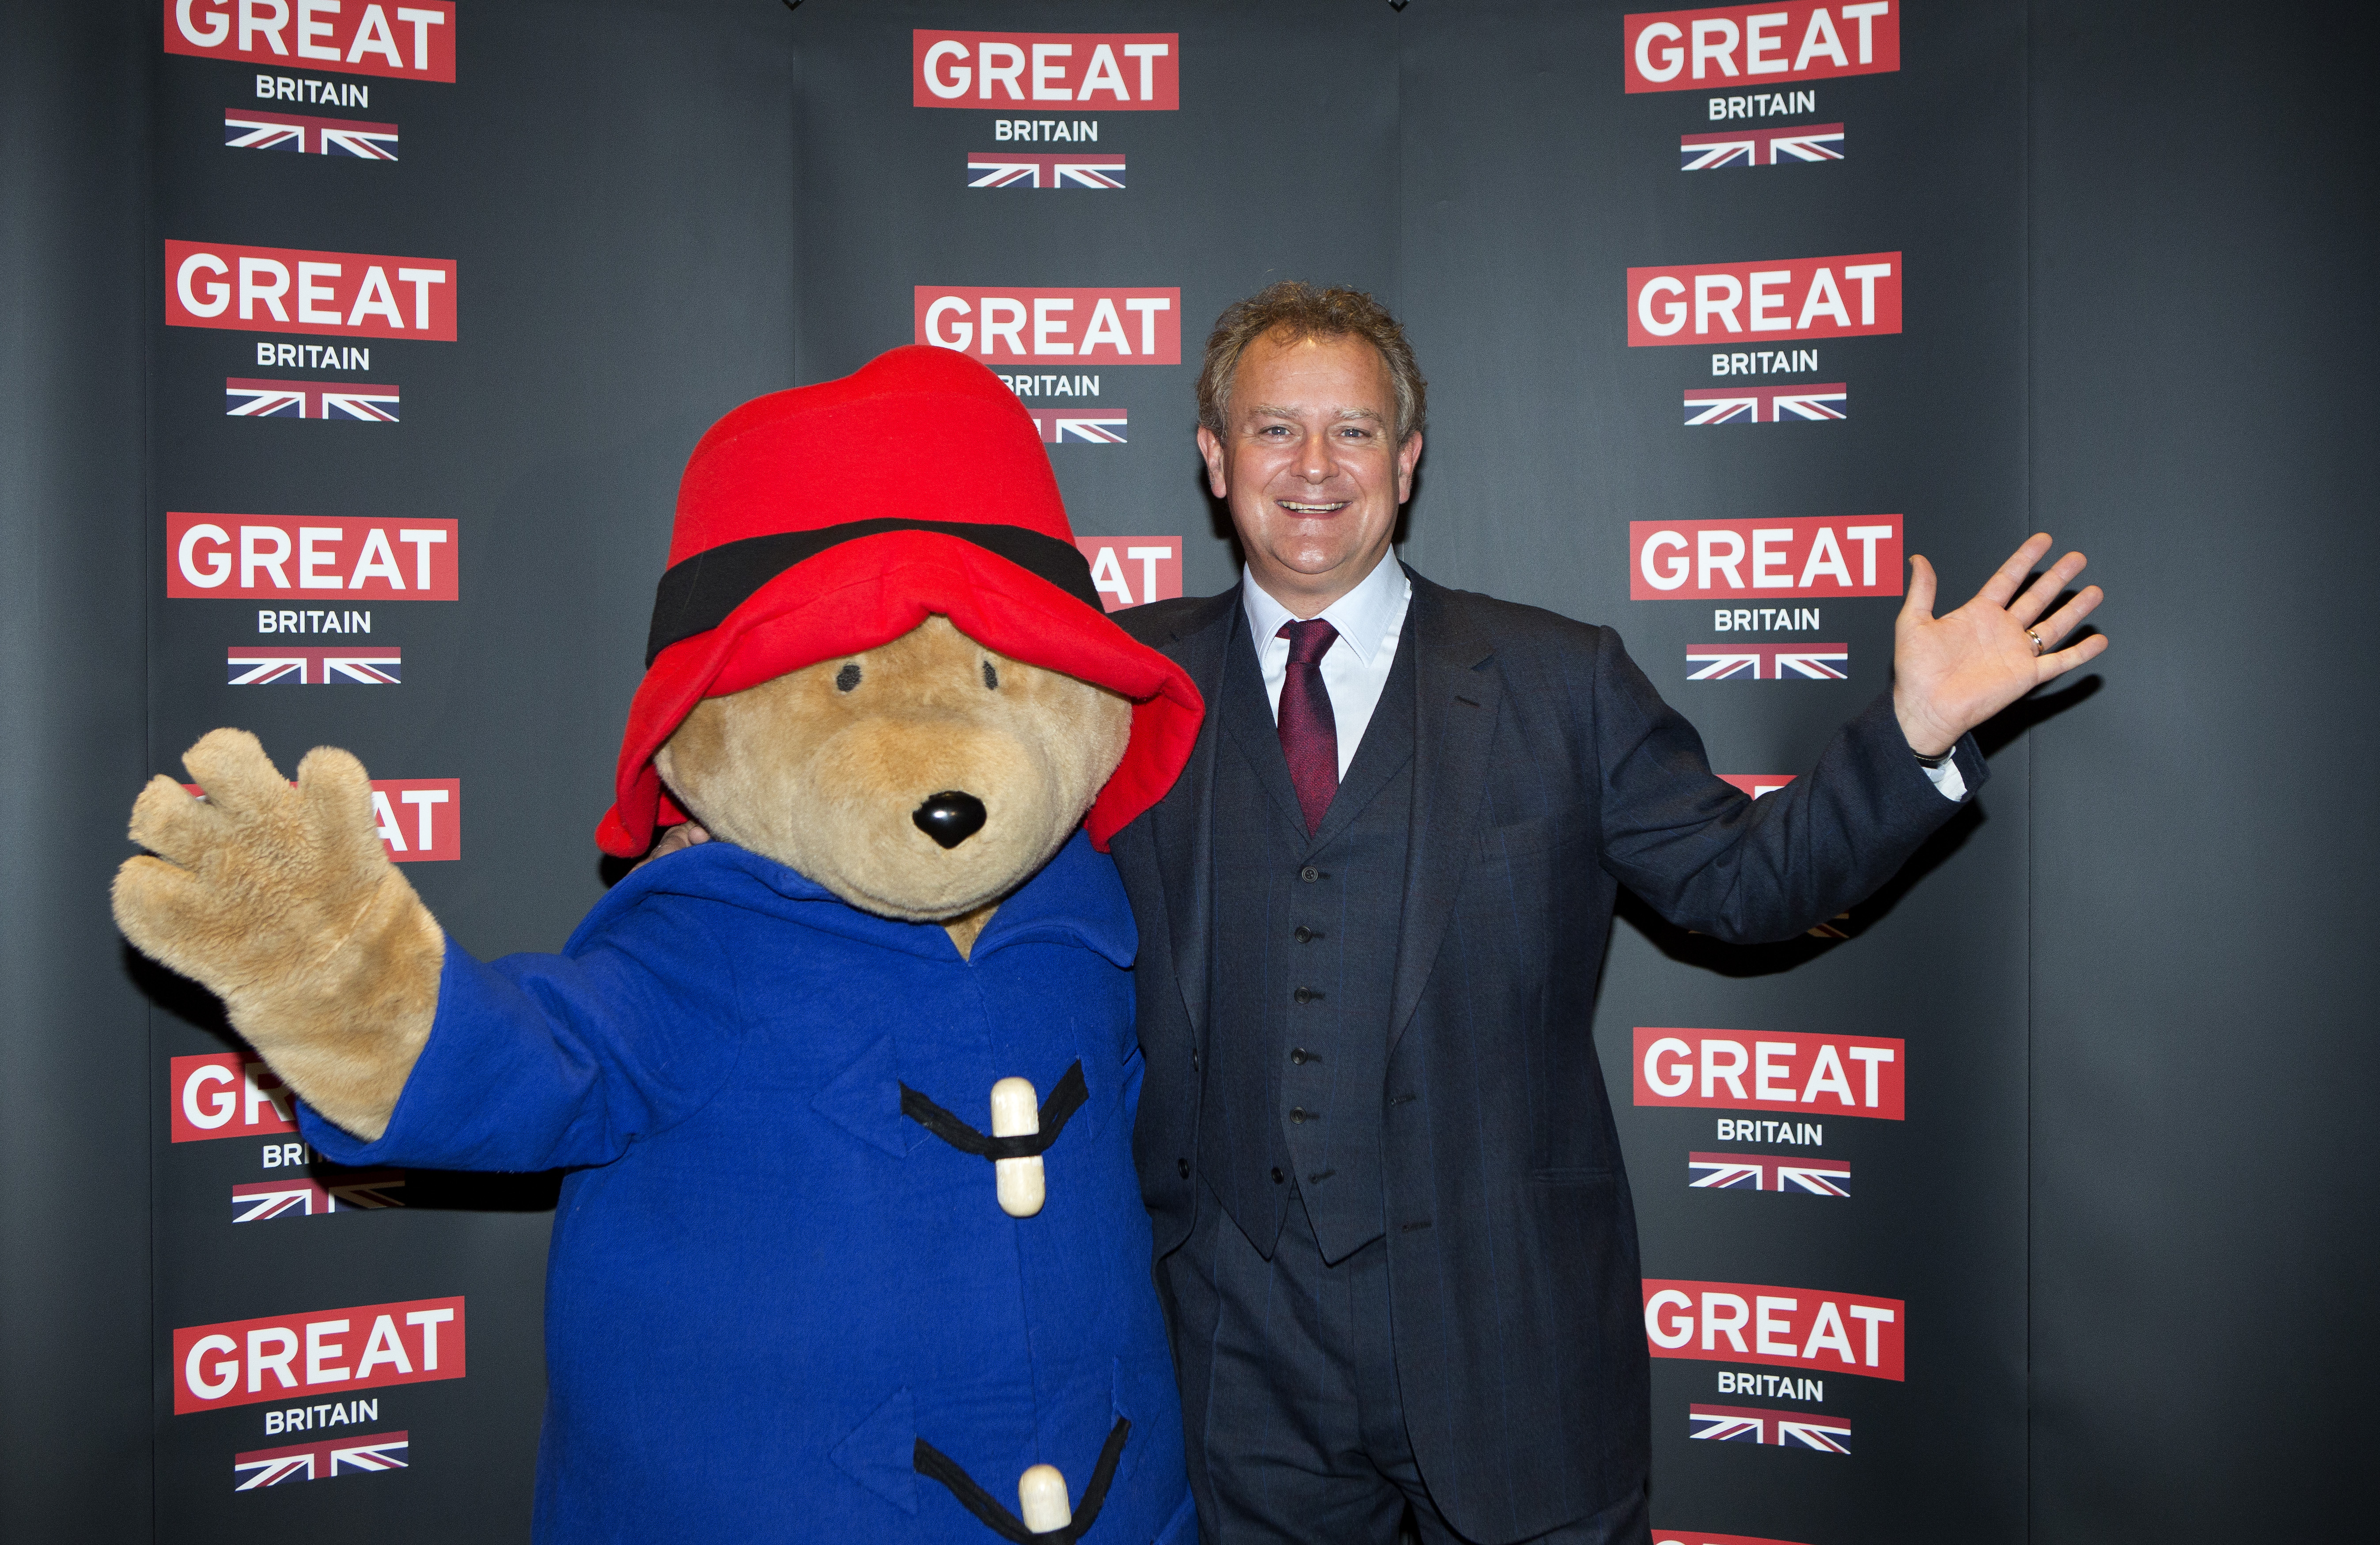 Actor Hugh Bonneville poses with a person dressed as Paddington Bear during the photo call for the film Paddington Bear at The British Embassy in Berlin, during the International Film Festival Berlinale, Feb. 7, 2014.